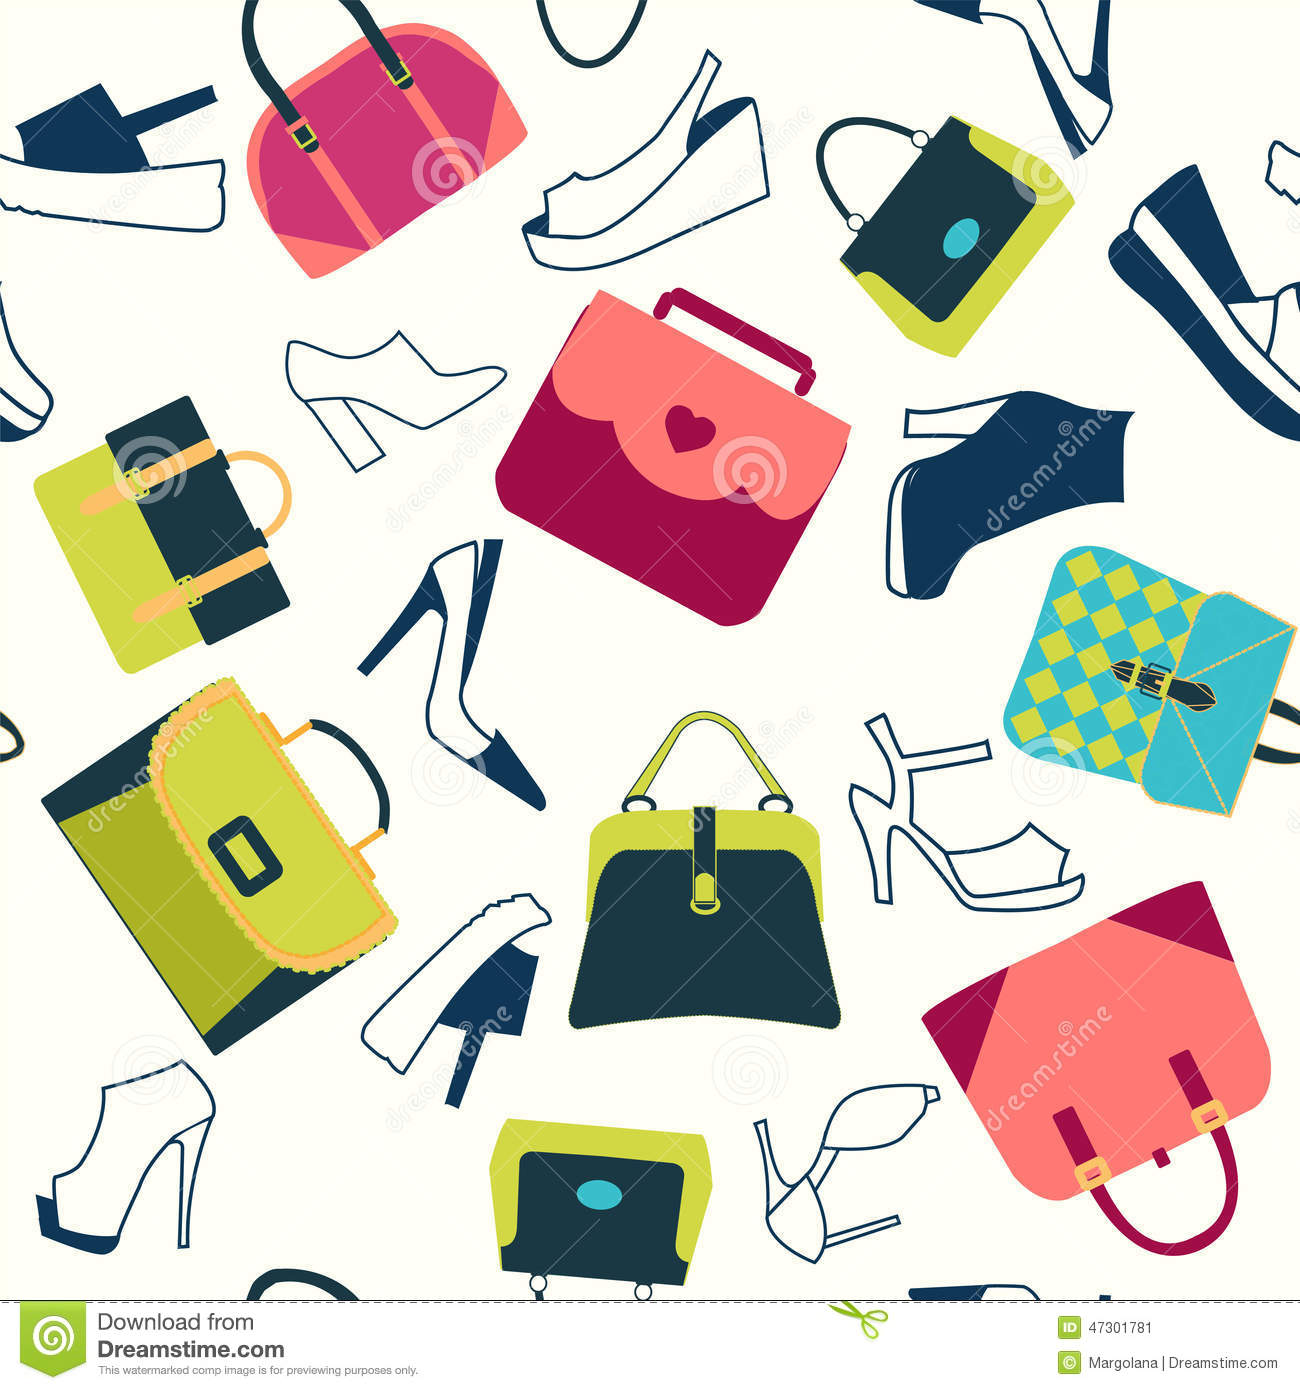 a88f5895f8 Colorful Background of fashion bags and women shoes in Flat design -  Illustration